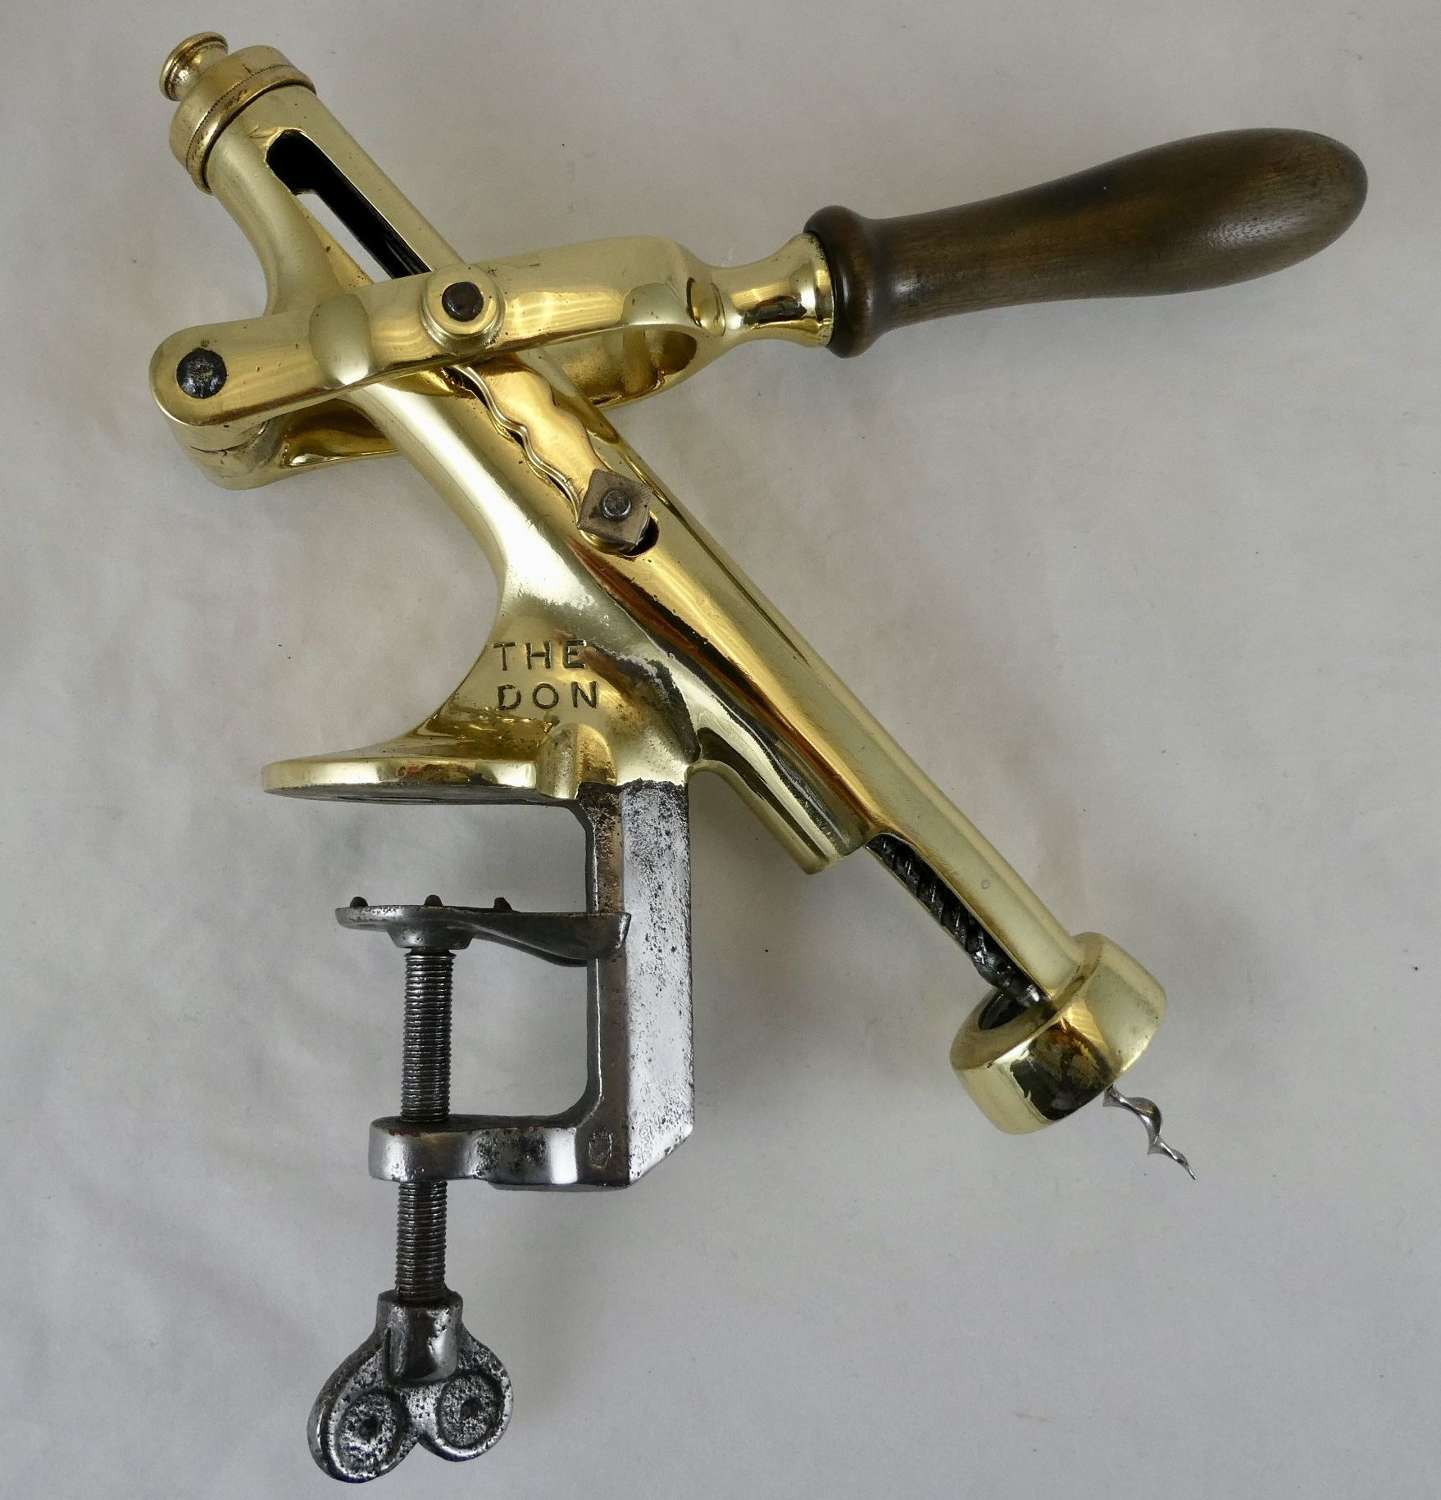 'The Don' early 20th century Bar Corkscrew